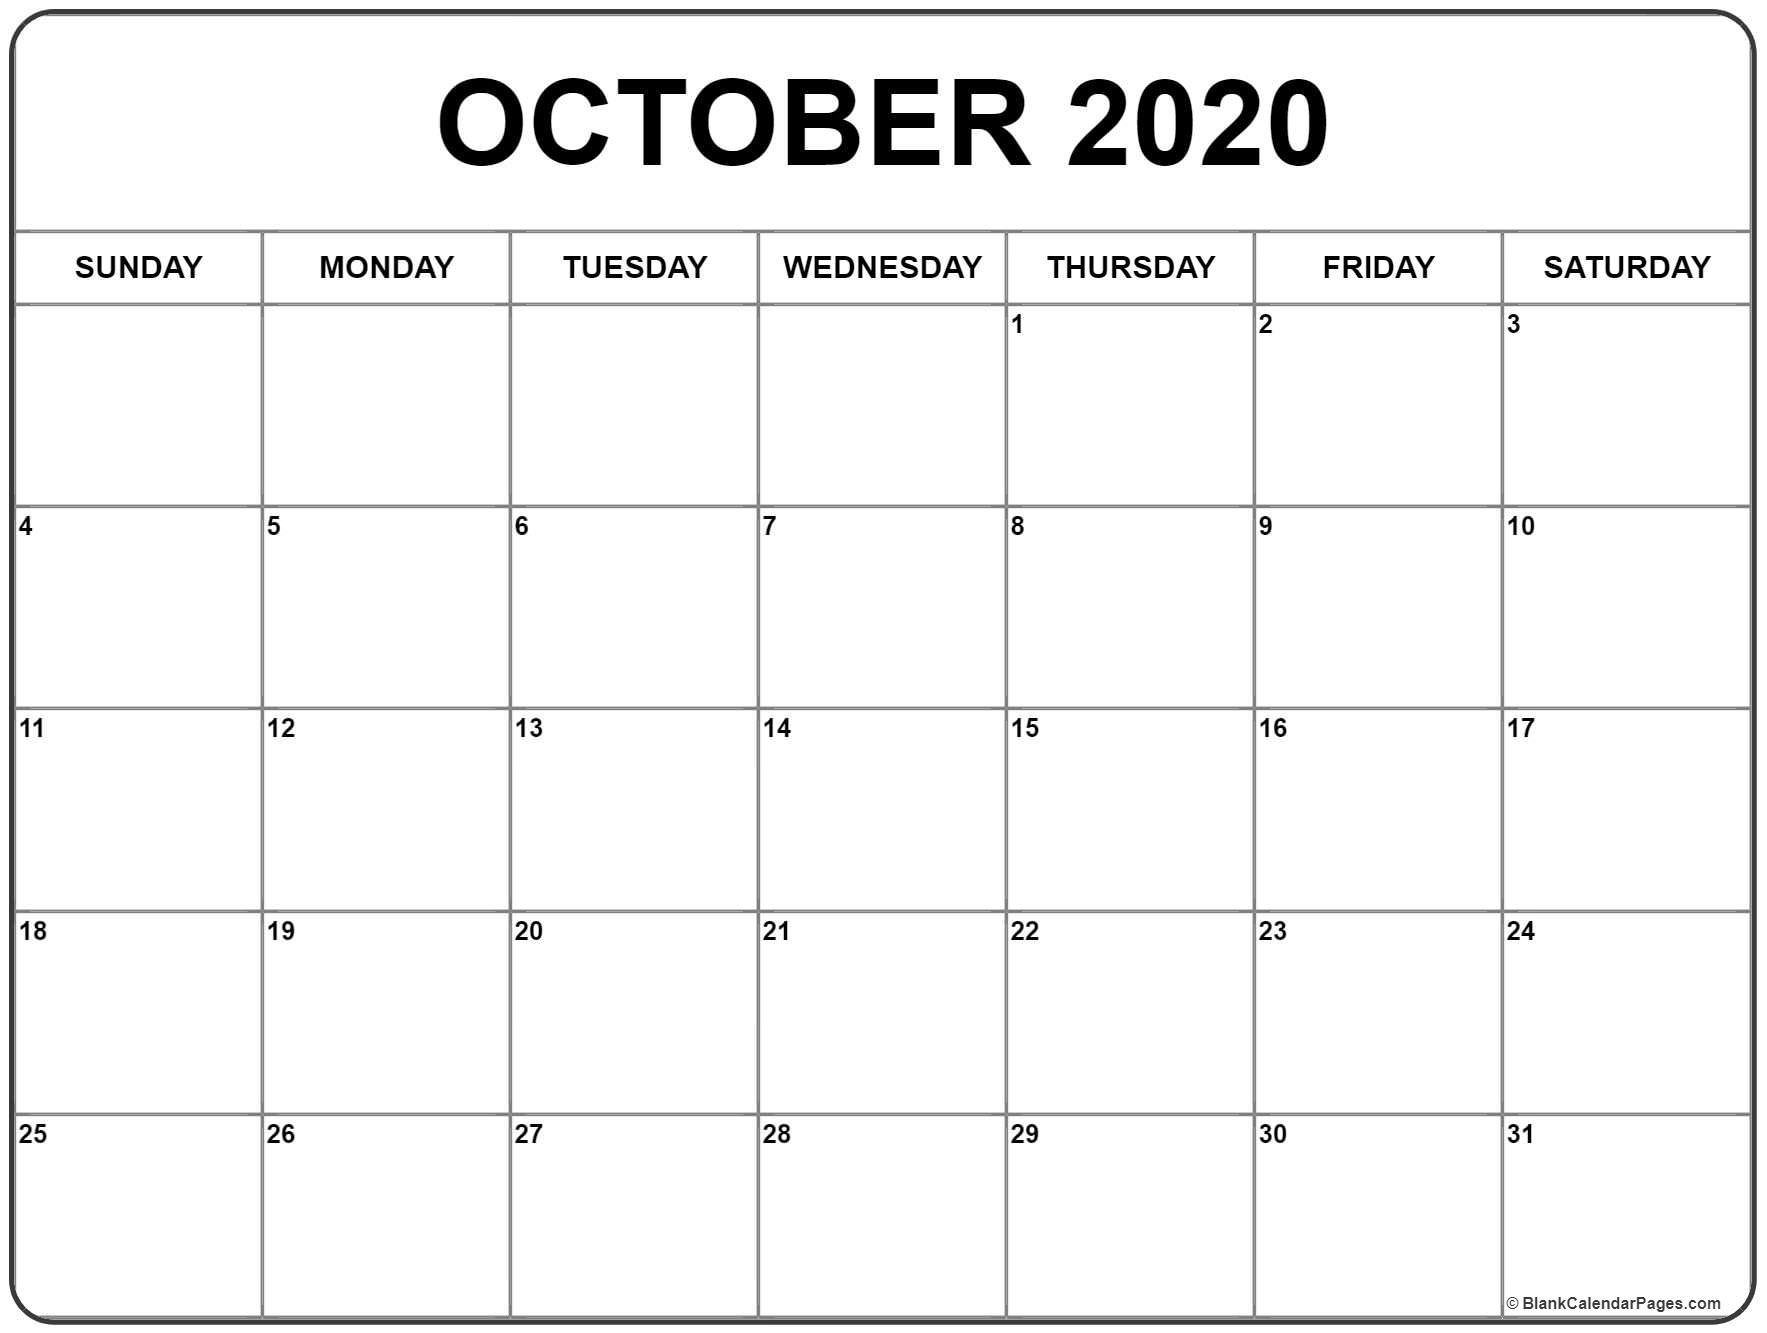 October 2020 Calendar | Free Printable Monthly Calendars_Calendar Blank October 2020